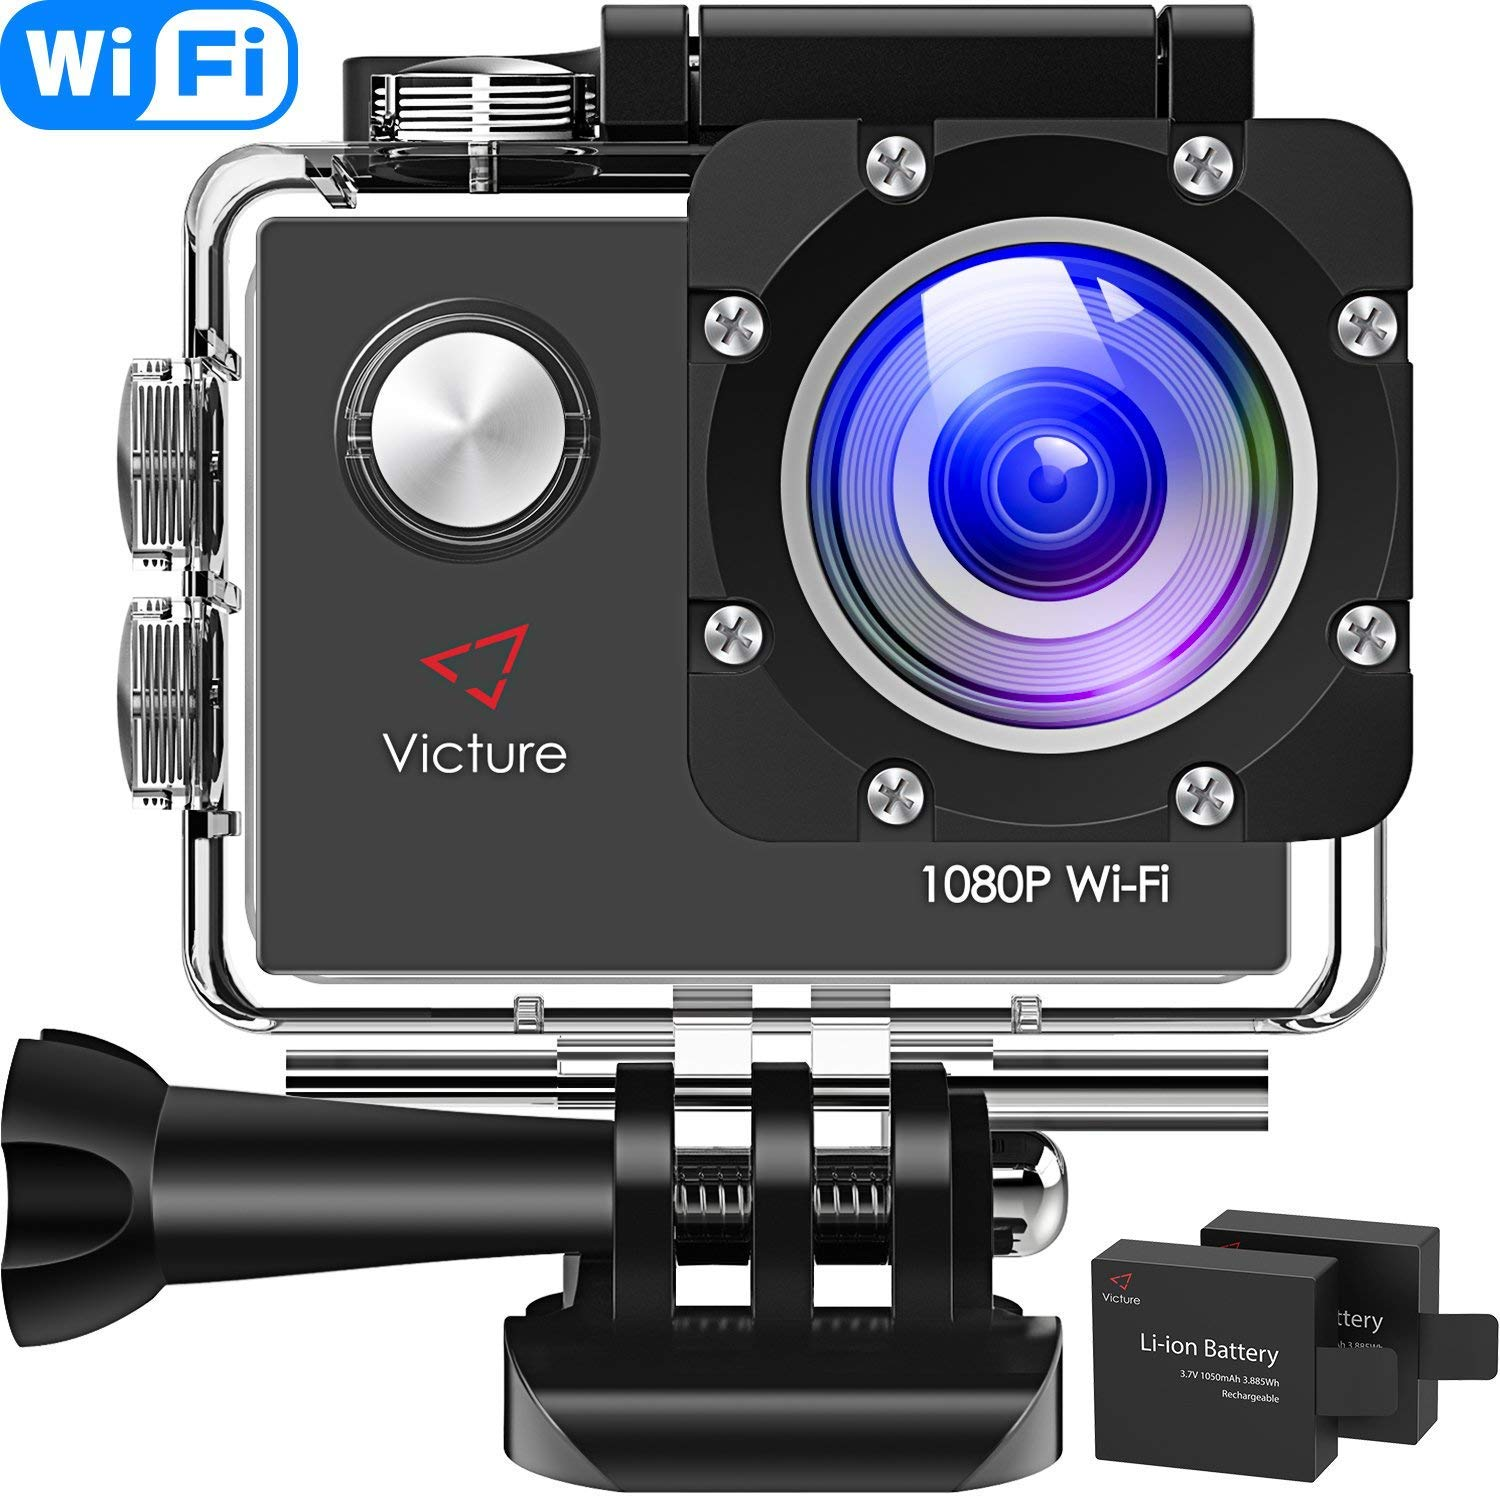 Victure Action Camera Full HD 1080P WiFi Waterproof Underwater Camcorder 2 LCD 170 Degree Ultra Wide Angle 30 m Sports Helmet Cam with 2 Batteries and Free Accessories by Victure (Image #1)